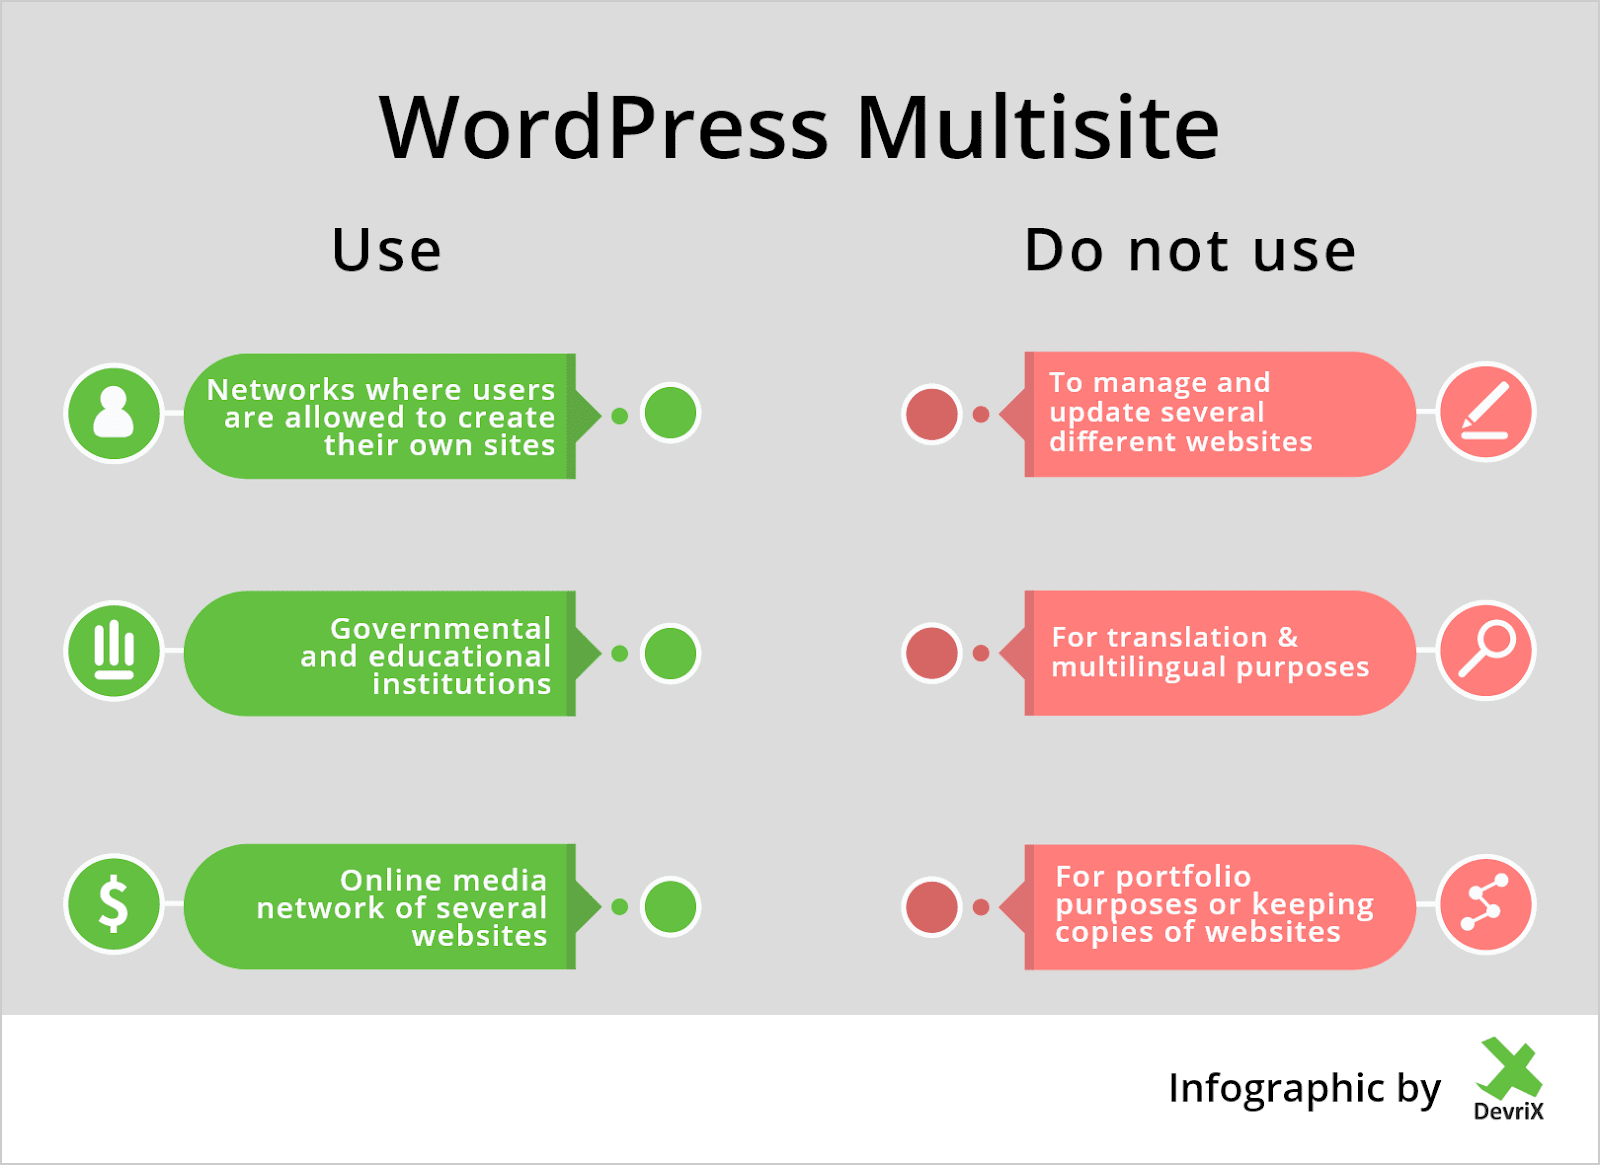 To use or not to use WordPress multisite